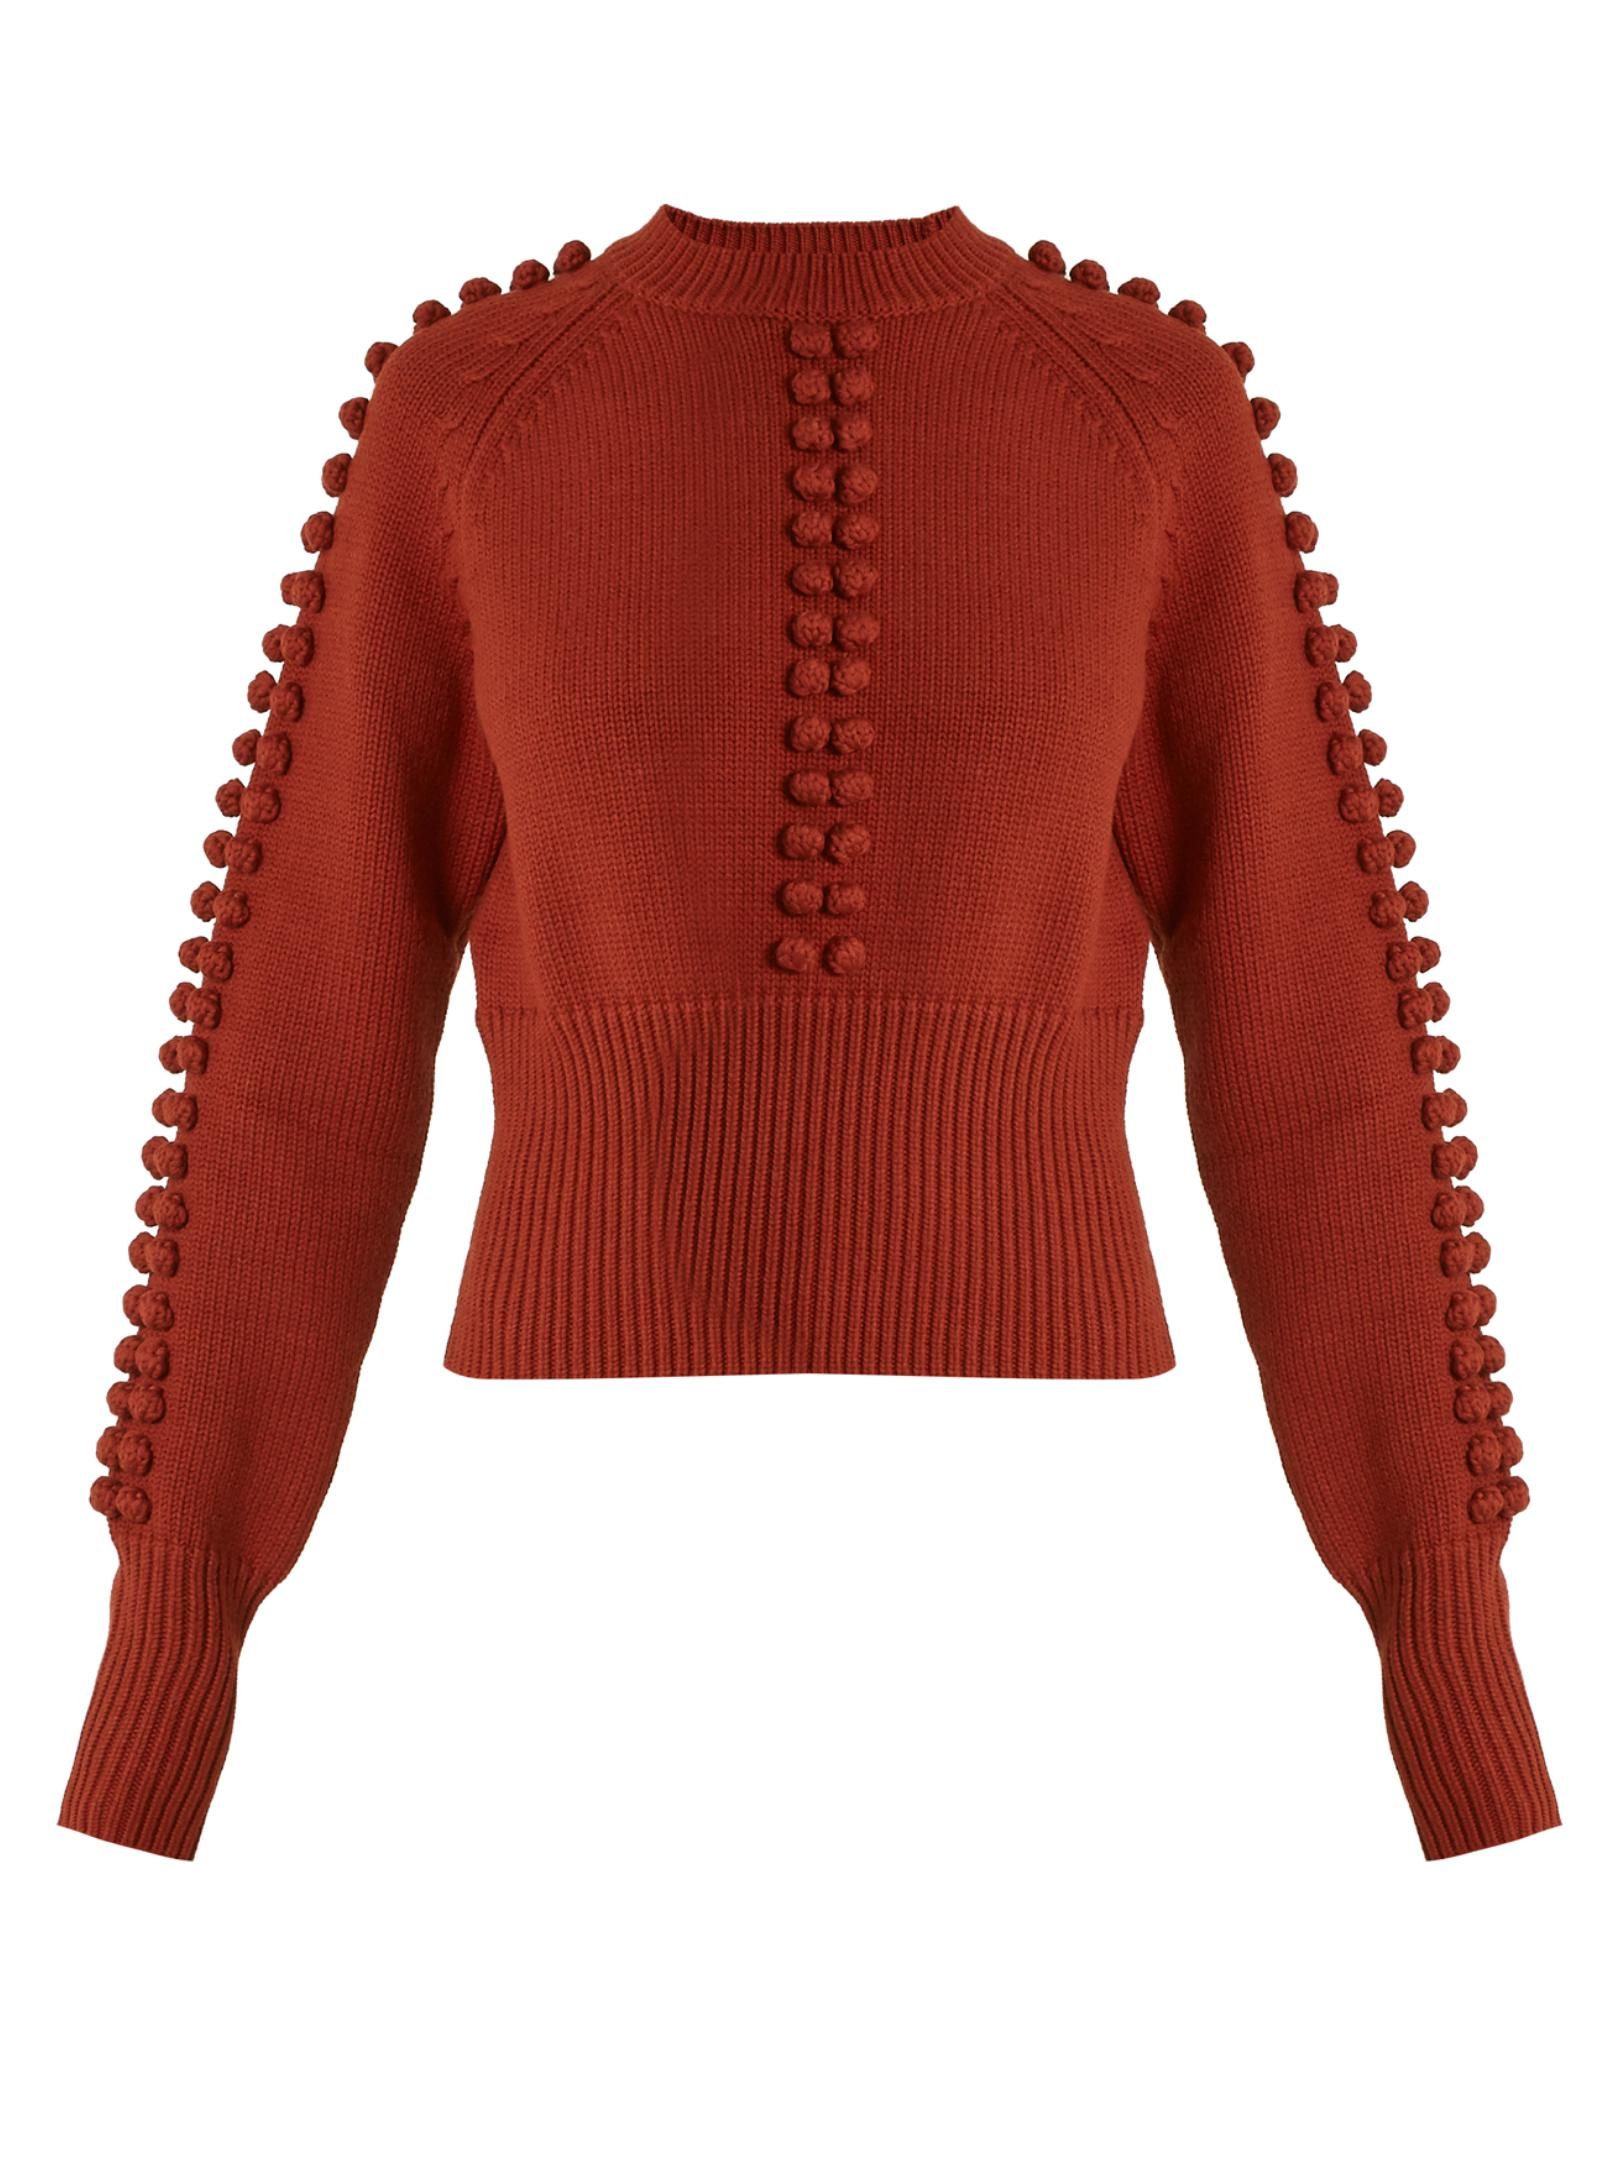 Chloé Pompom-embellished Sweater in Red | Lyst